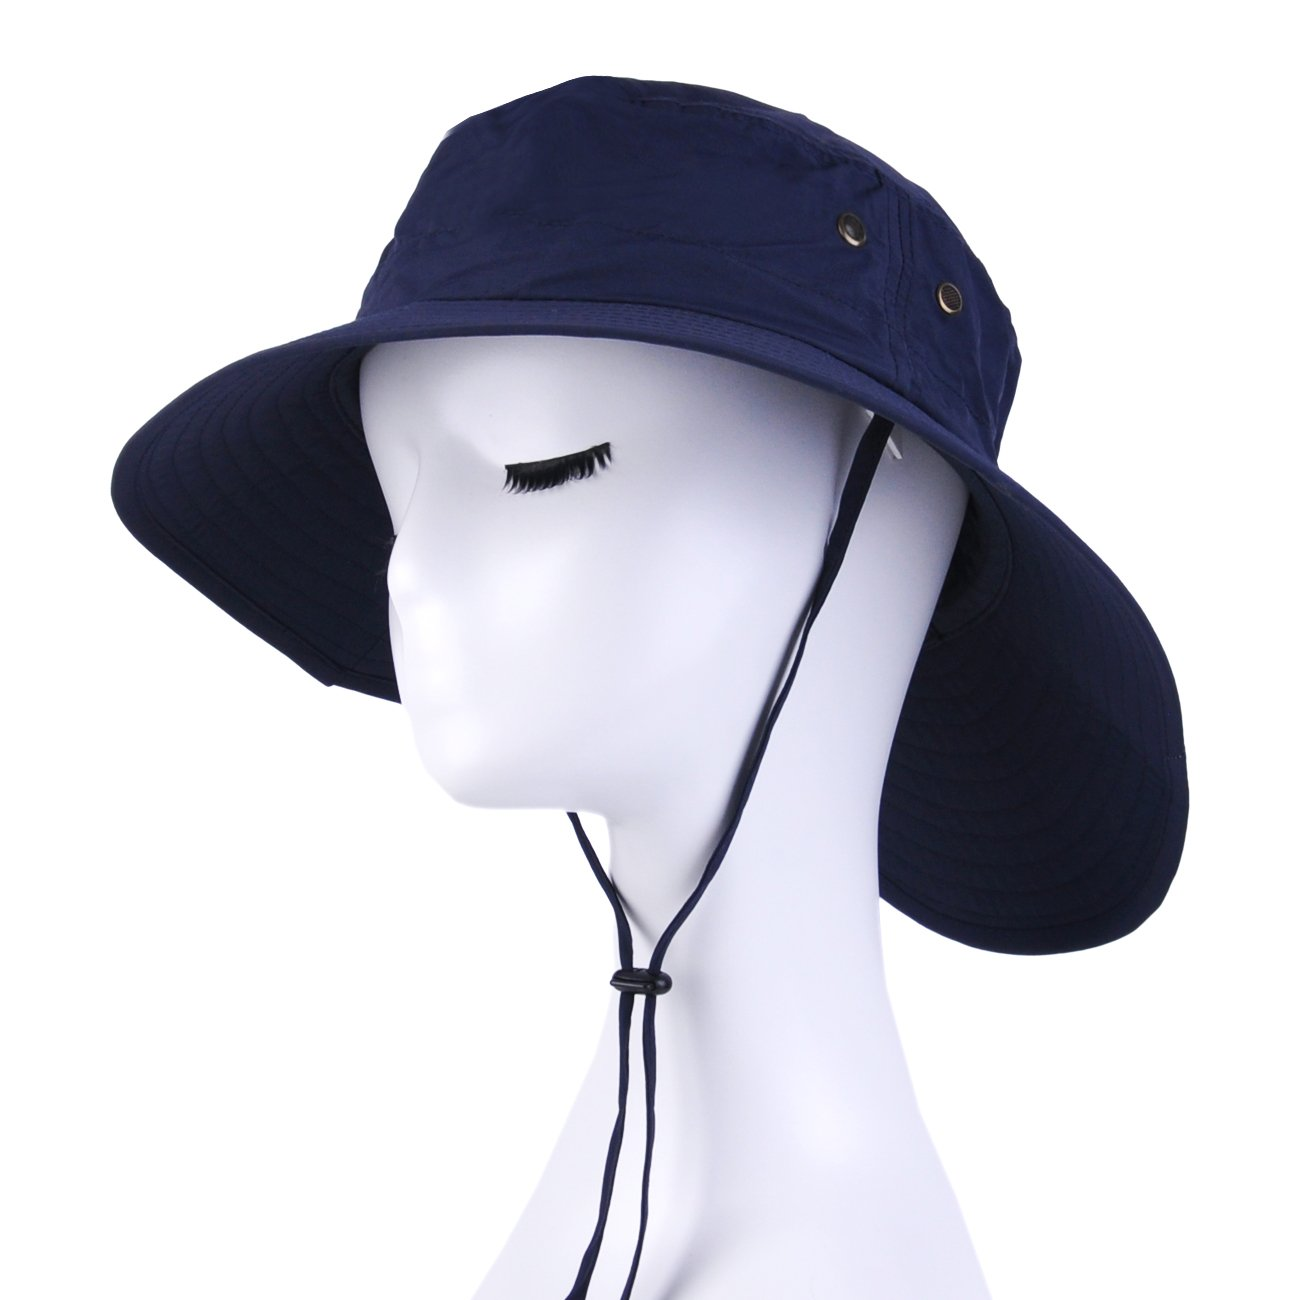 Jormatt Women&Mens Outdoor Wide Brim Sun Boonie Hat Summer UV Protection Fishing Hiking Gardening Neck Face Cover Flap Sun Cap with Chain Strap Foldable Breathable SPF UPF 50+,Navy Blue